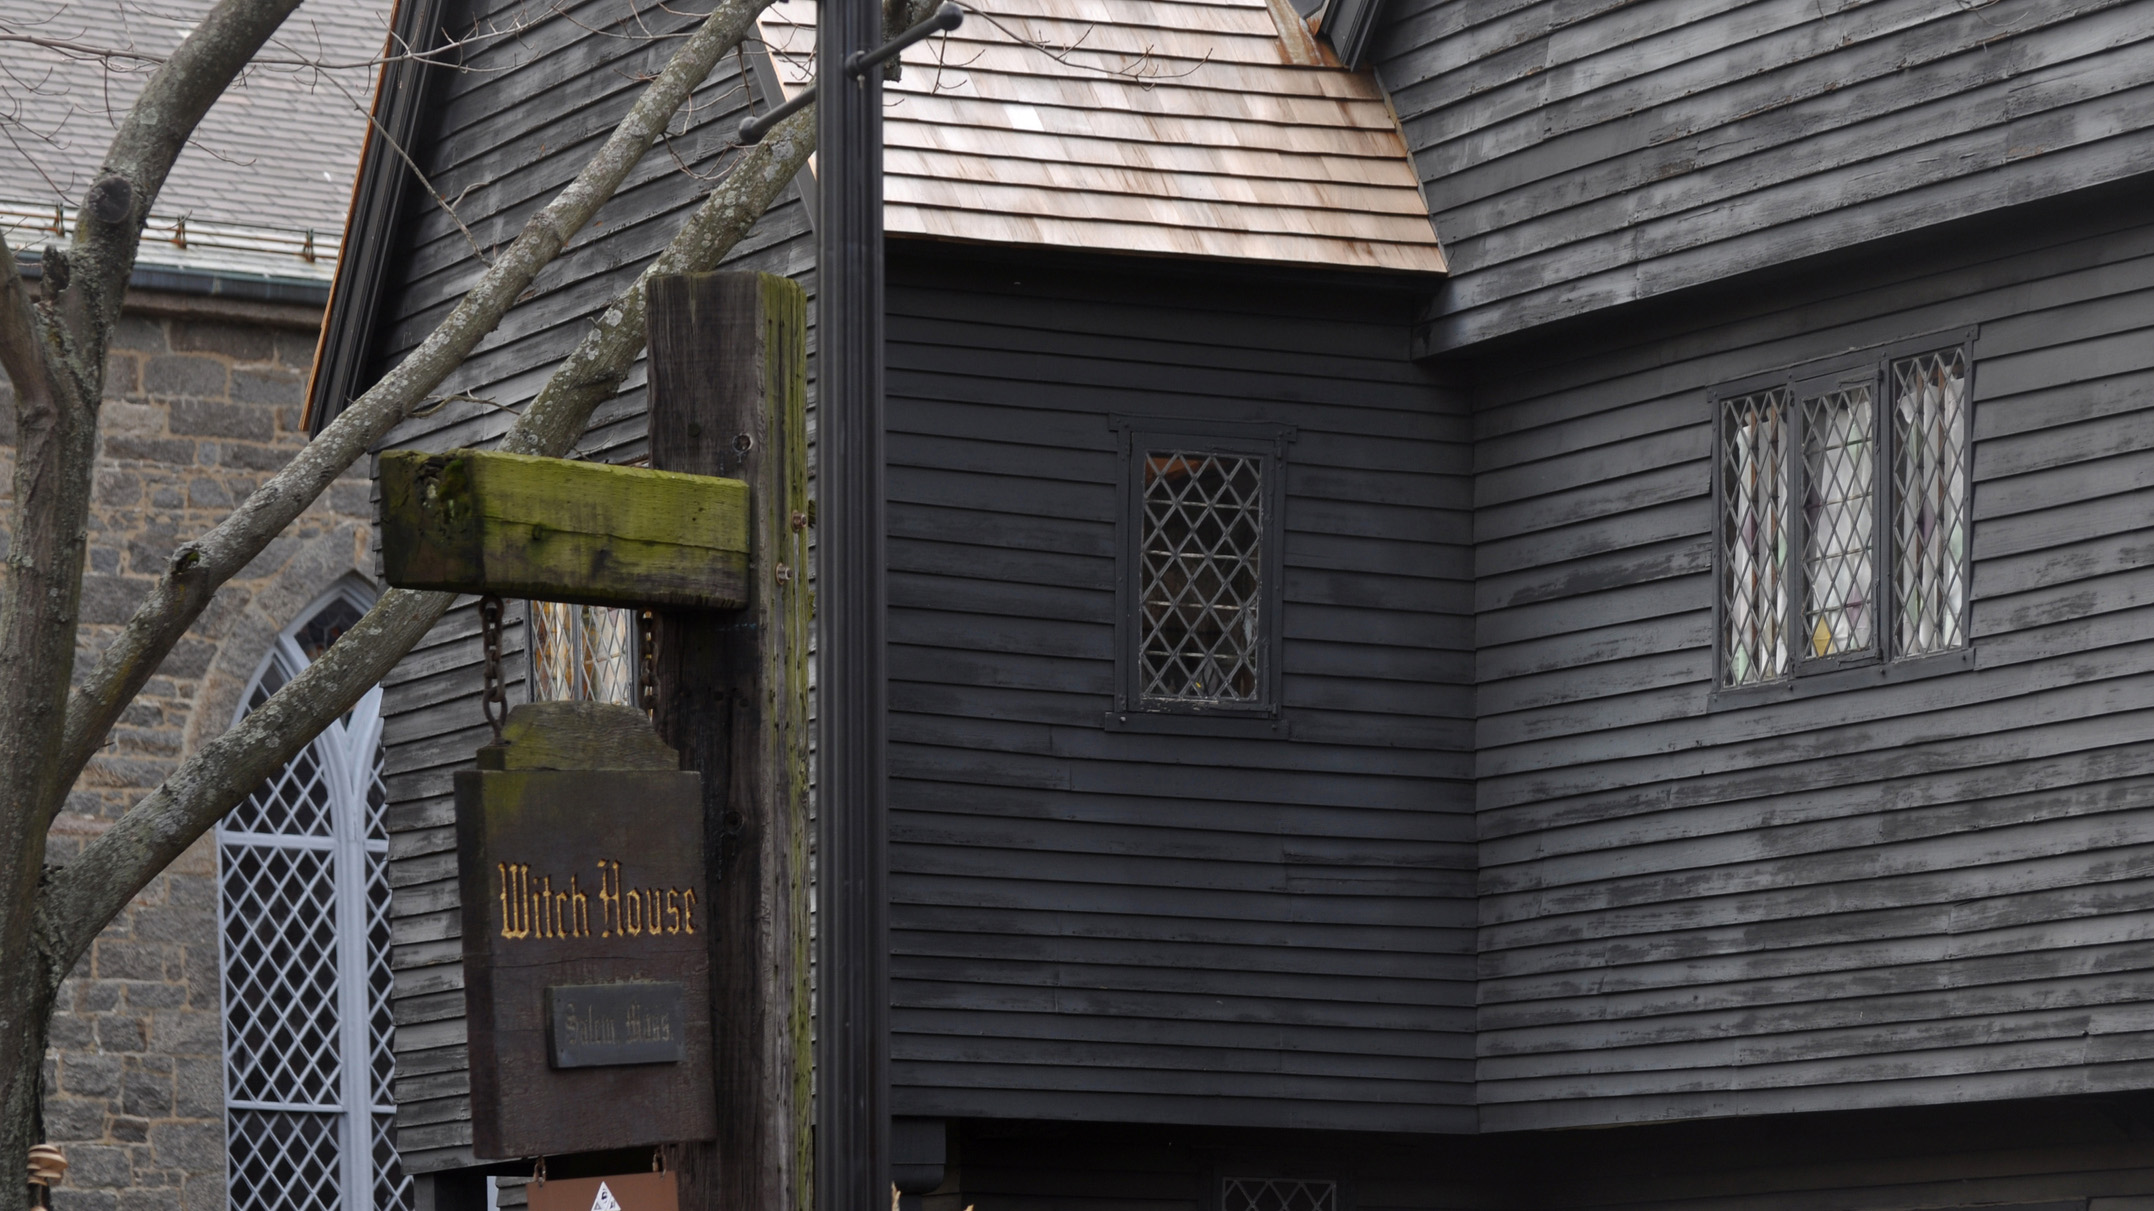 The Judge Jonathan Corwin House also known as The Witch House: Black old historical house in Salem, MA,  is the only structure still standing in Salem with direct ties to the Witchcraft Trials of 1692.